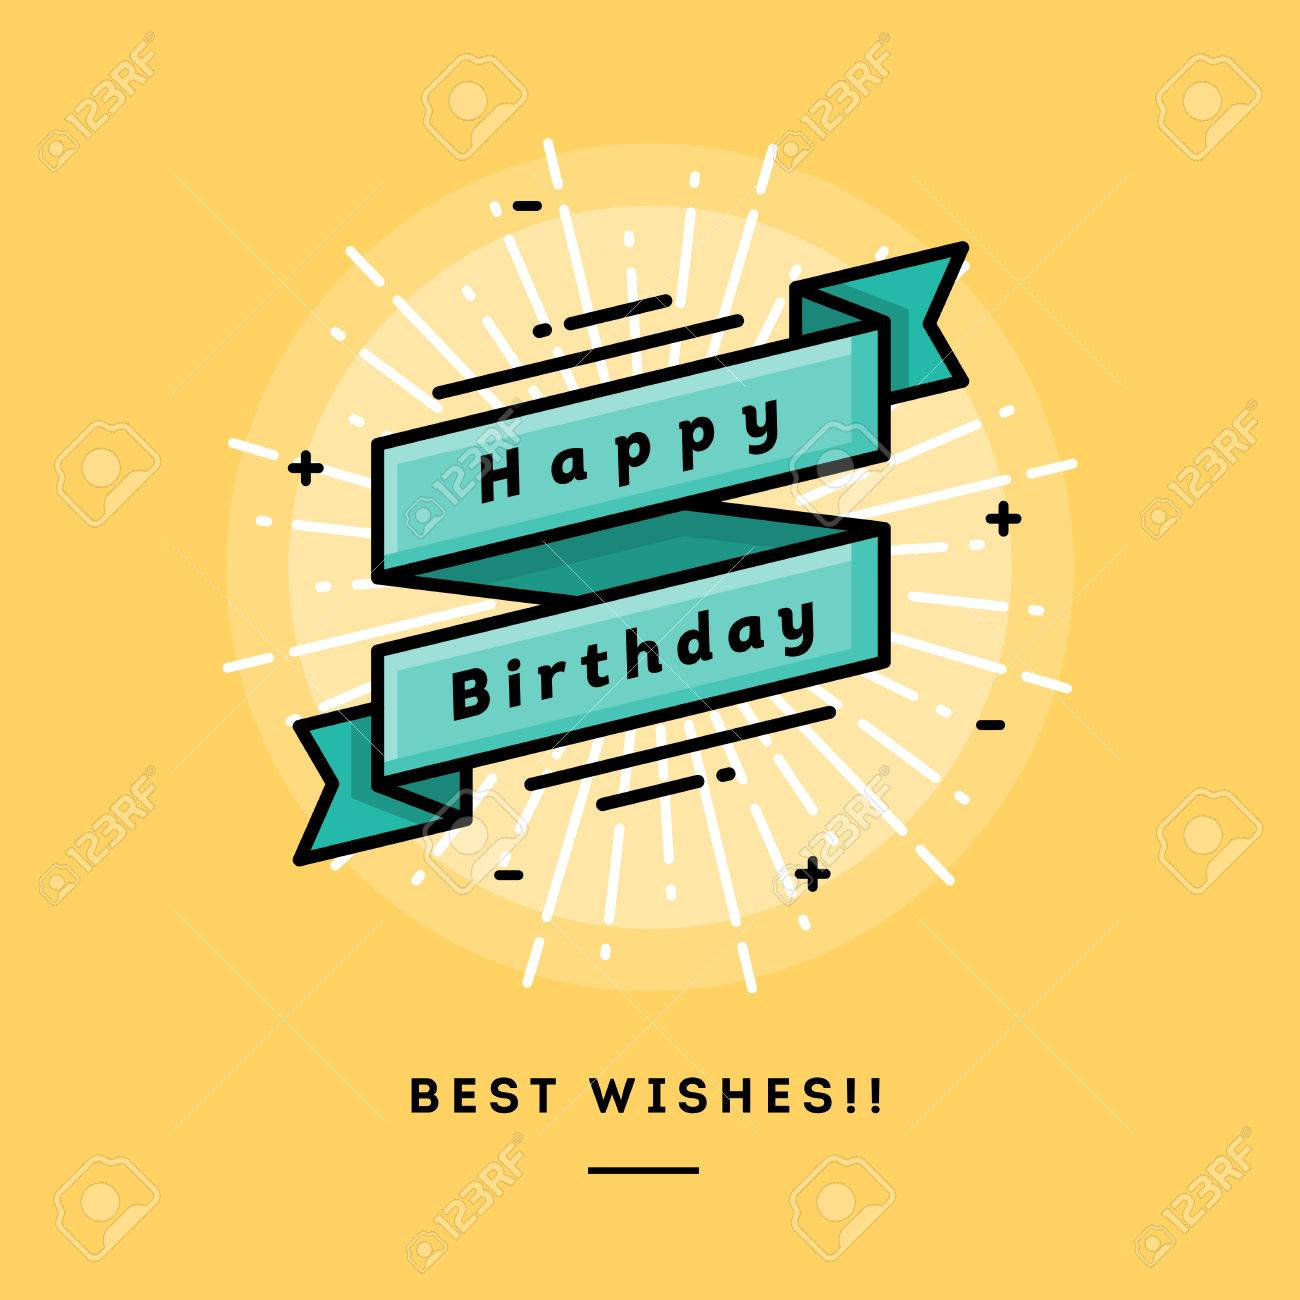 Happy birthday, flat design thin line banner, usage for e-mail newsletters, web banners, headers, blog posts, print and more - 50569658